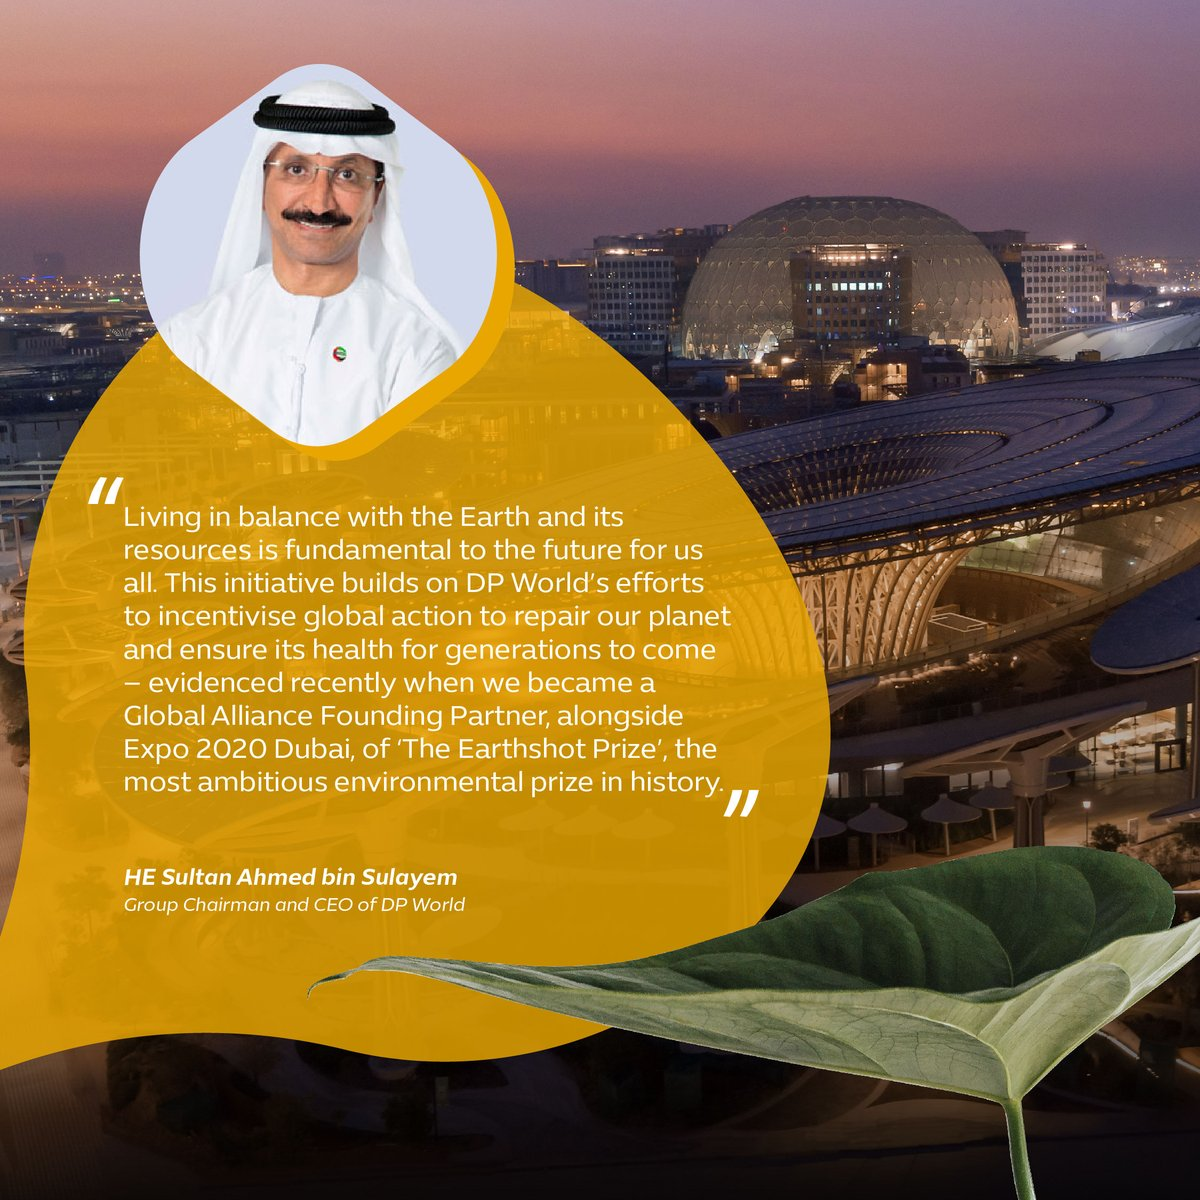 HE Sultan Ahmed bin Sulayem, Group Chairman and CEO of @DP_World addresses the group's commitment to tackling today's pressing environmental challenges and contributing to a world where the environment is protected. #Expo2020 #Dubai #UAE https://t.co/ttQFQkNERO